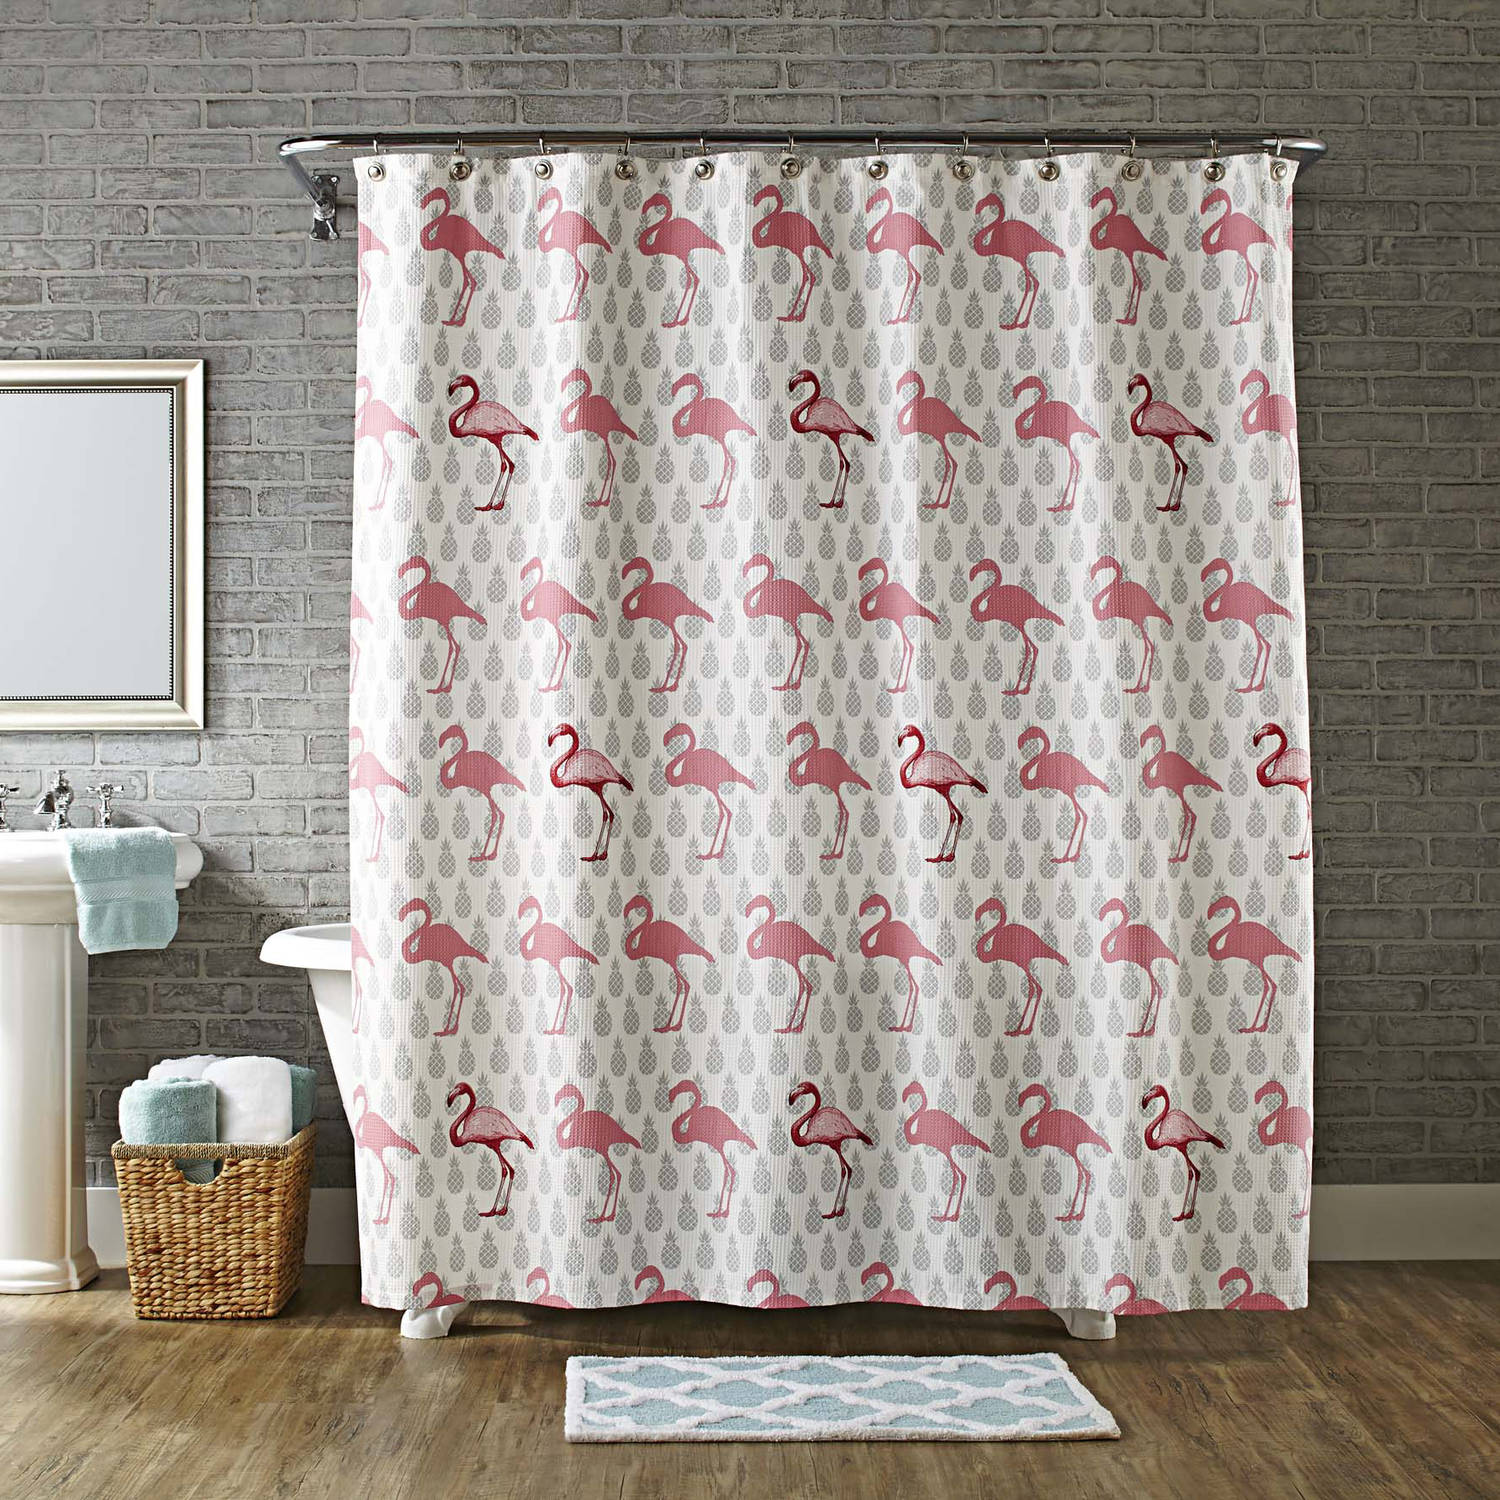 Chevron bathroom sets with shower curtain and rugs - Chevron Bathroom Sets With Shower Curtain And Rugs 16